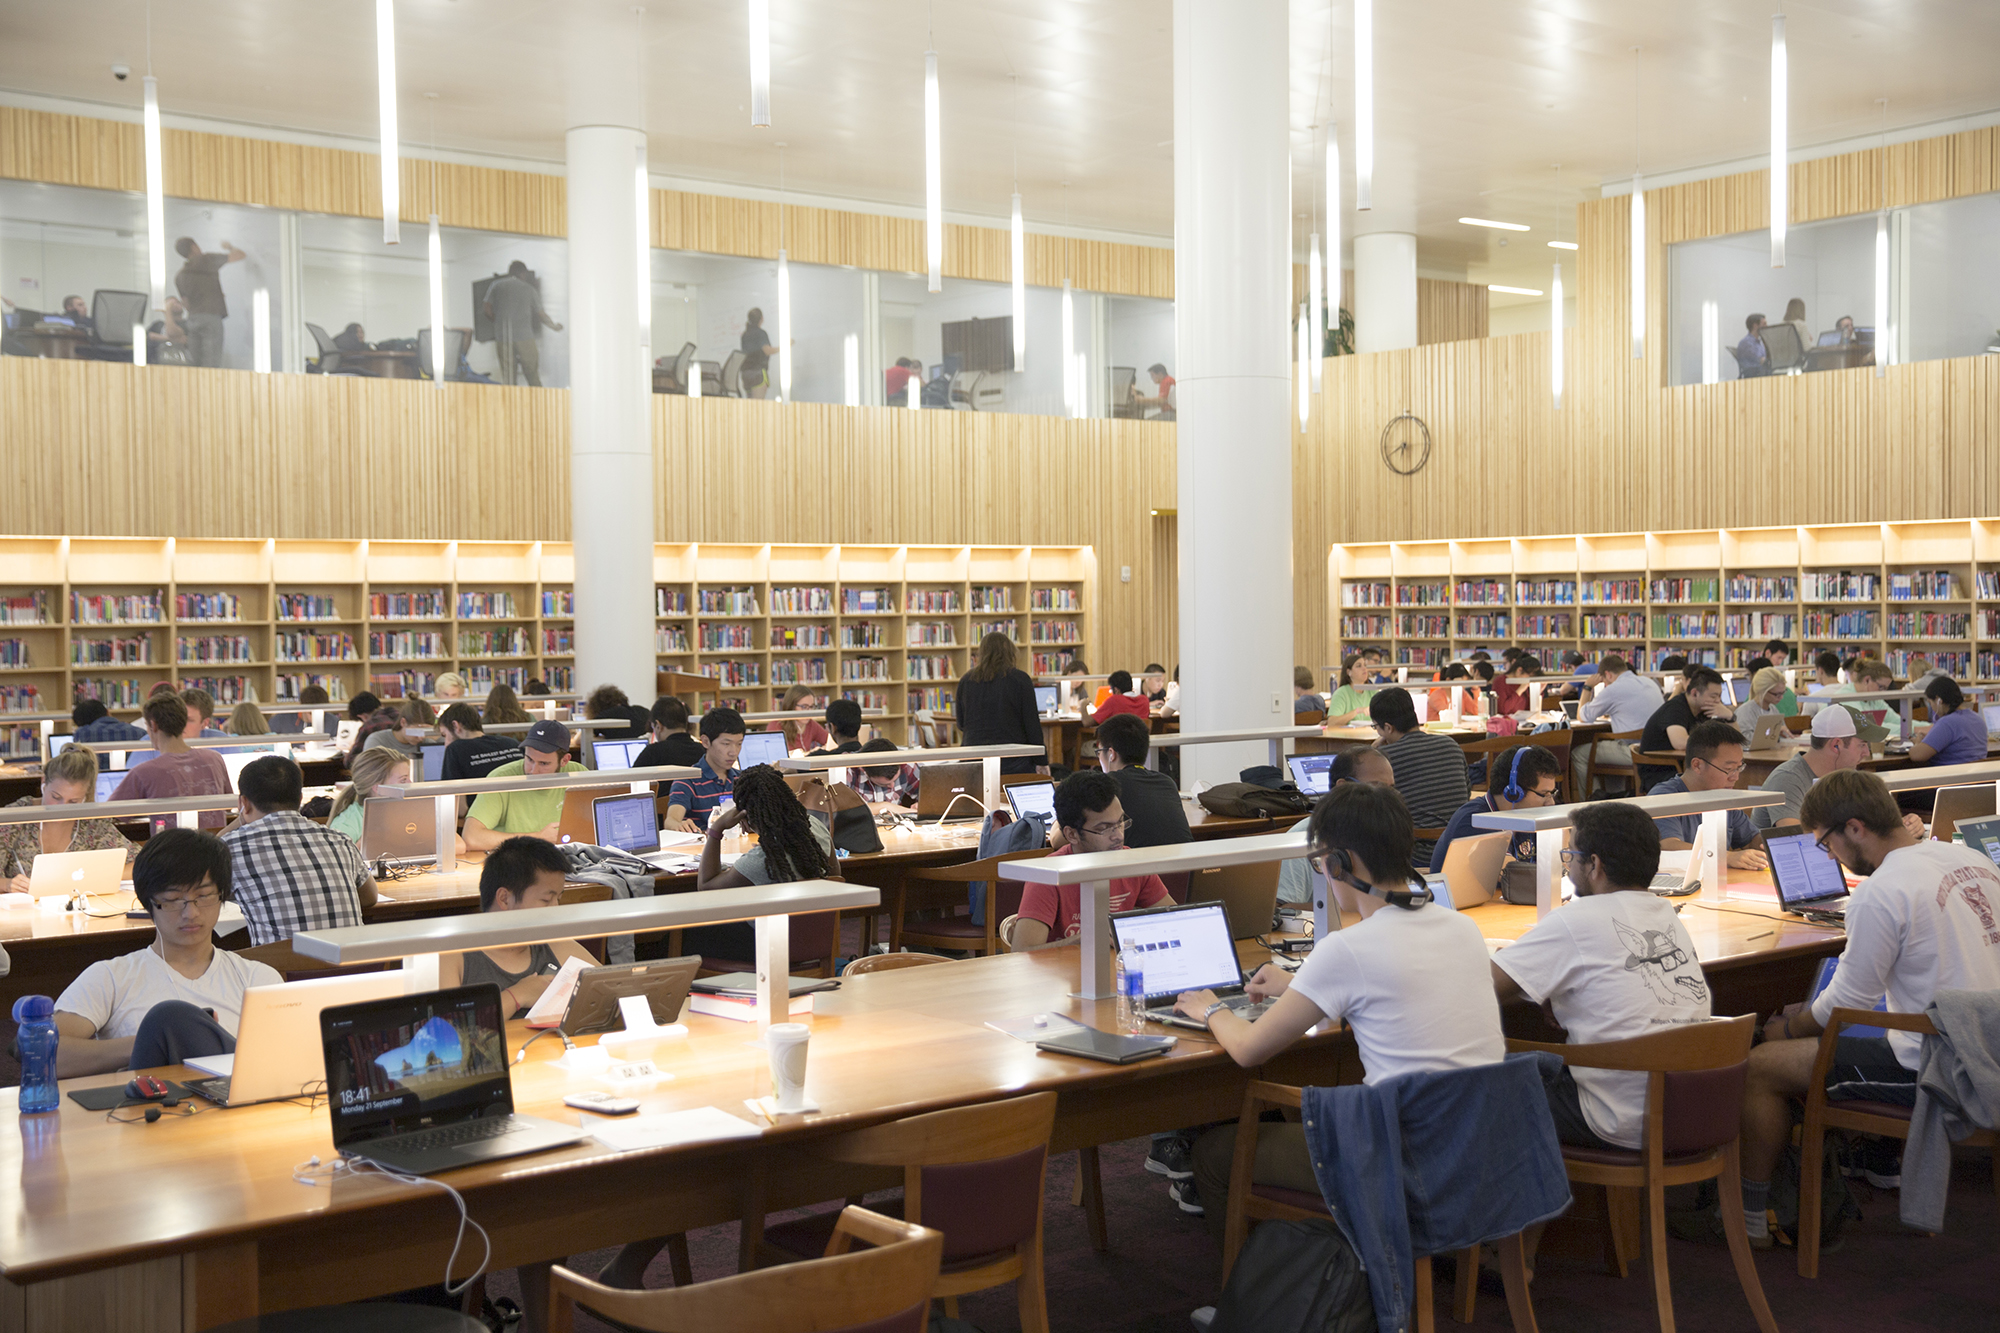 Students work at laptops at long wooden tables in the quiet reading room at Hunt Library